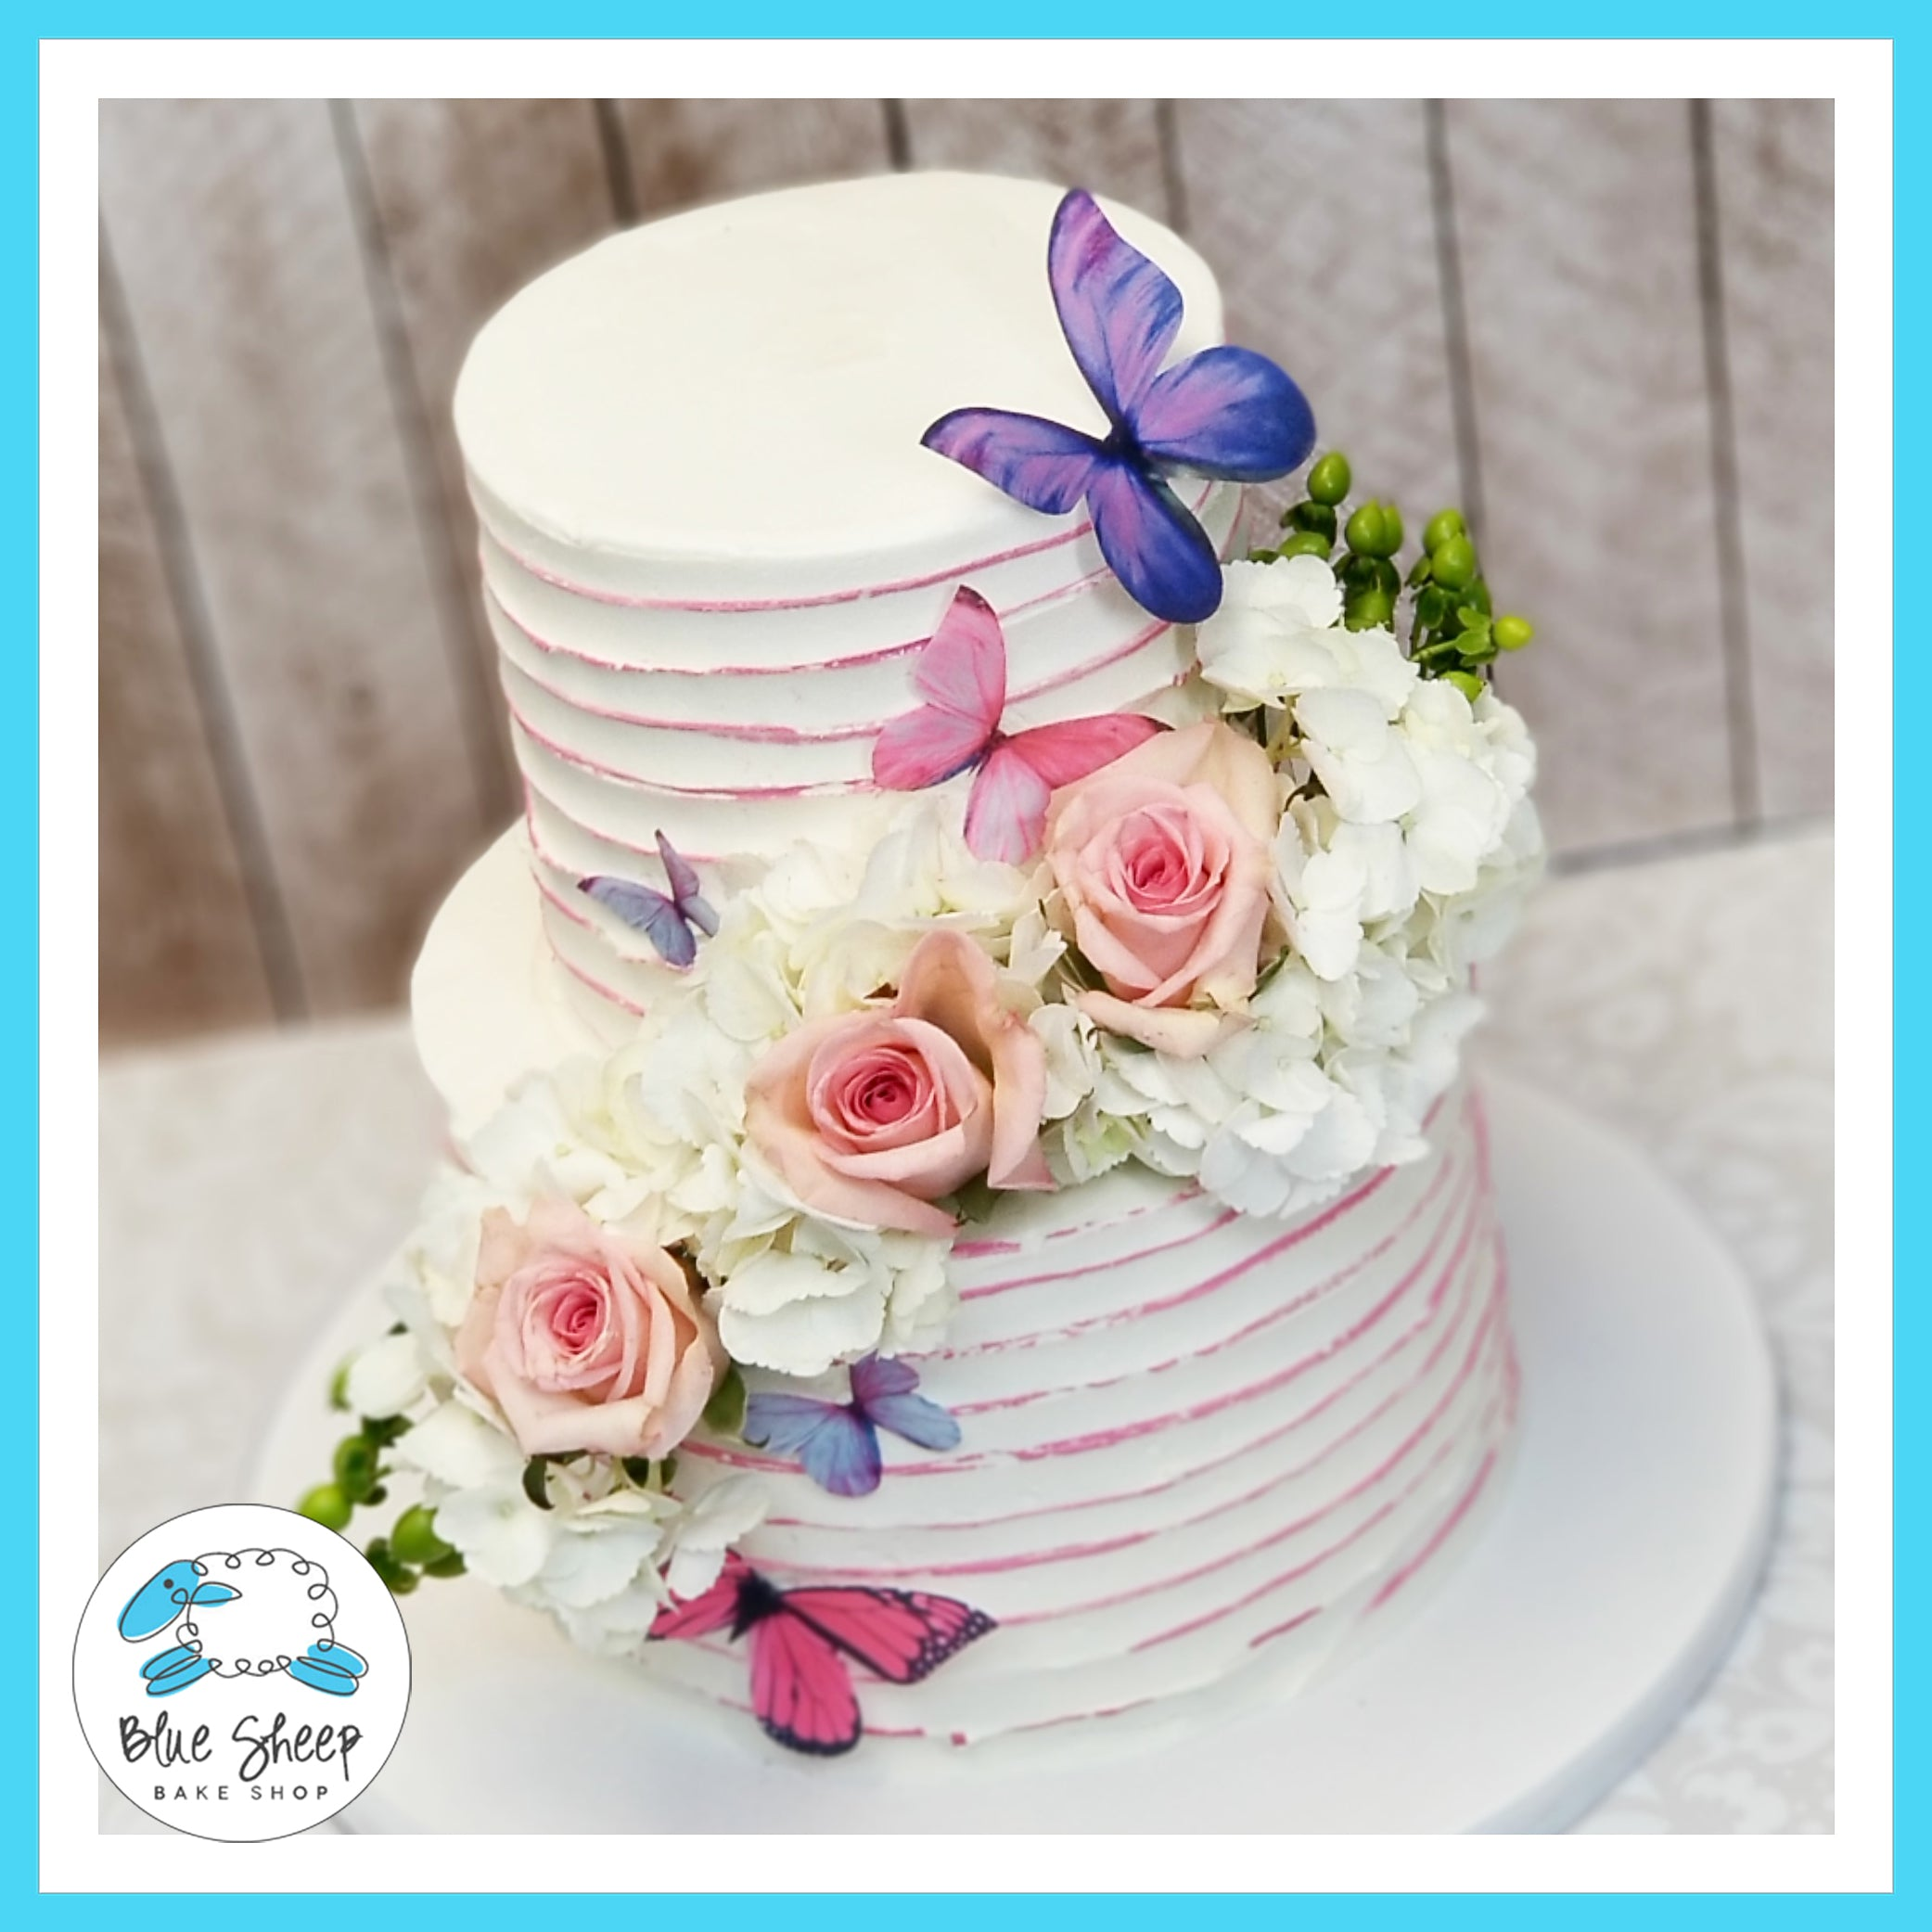 Fabulous Buttercream Floral 1St Birthday Cake With Butterflies Blue Sheep Personalised Birthday Cards Petedlily Jamesorg